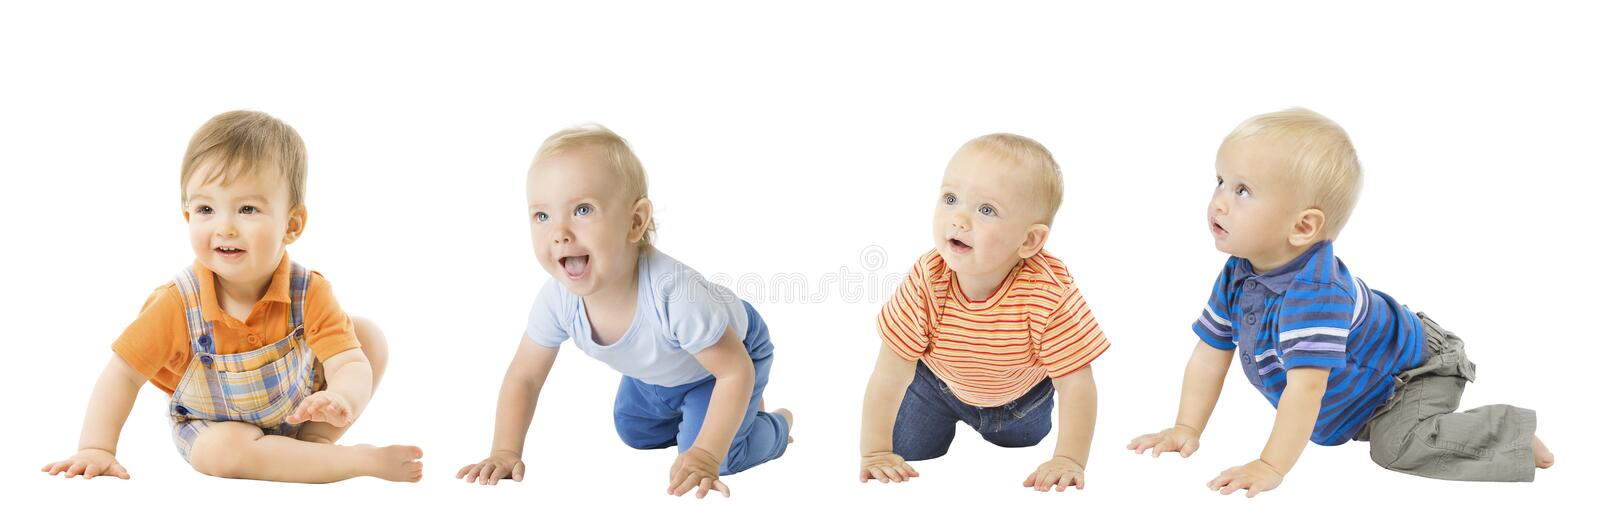 Baby Boys Group, Crawling Infant Kids, Toddler Children Isolated. Over White background royalty free stock photo